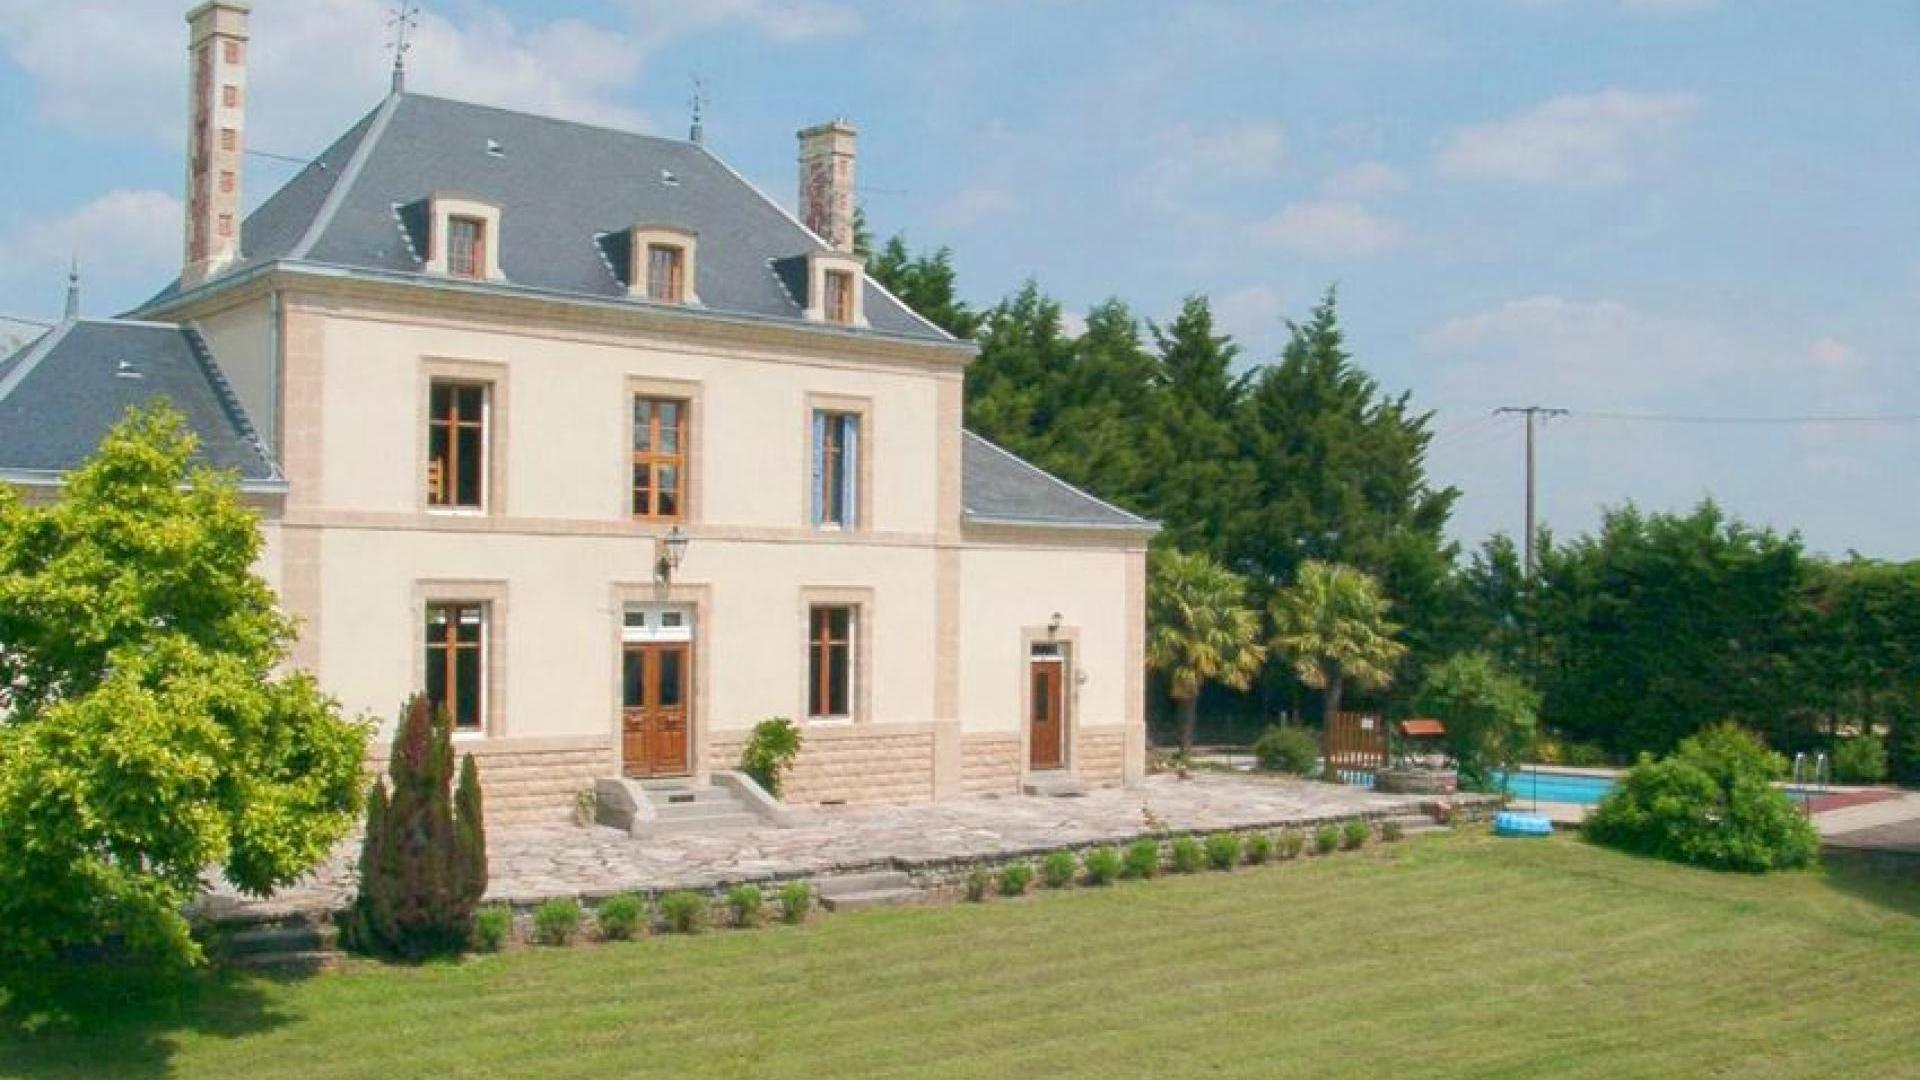 8 bedroom house in the Vendee, heated swimming pool - LDL